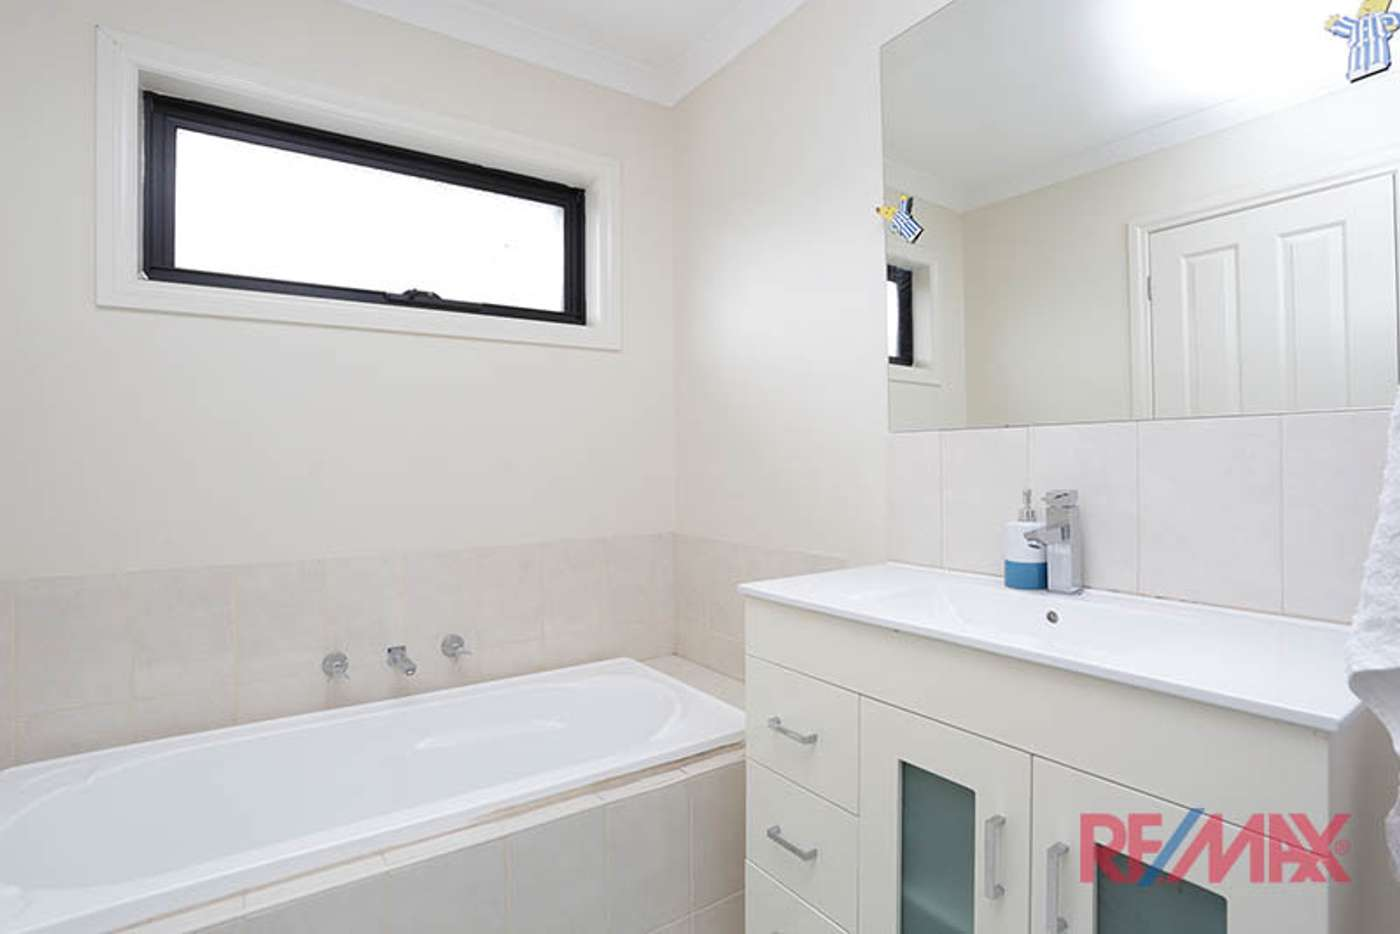 Sixth view of Homely townhouse listing, 2 Carroll Avenue, Dandenong VIC 3175